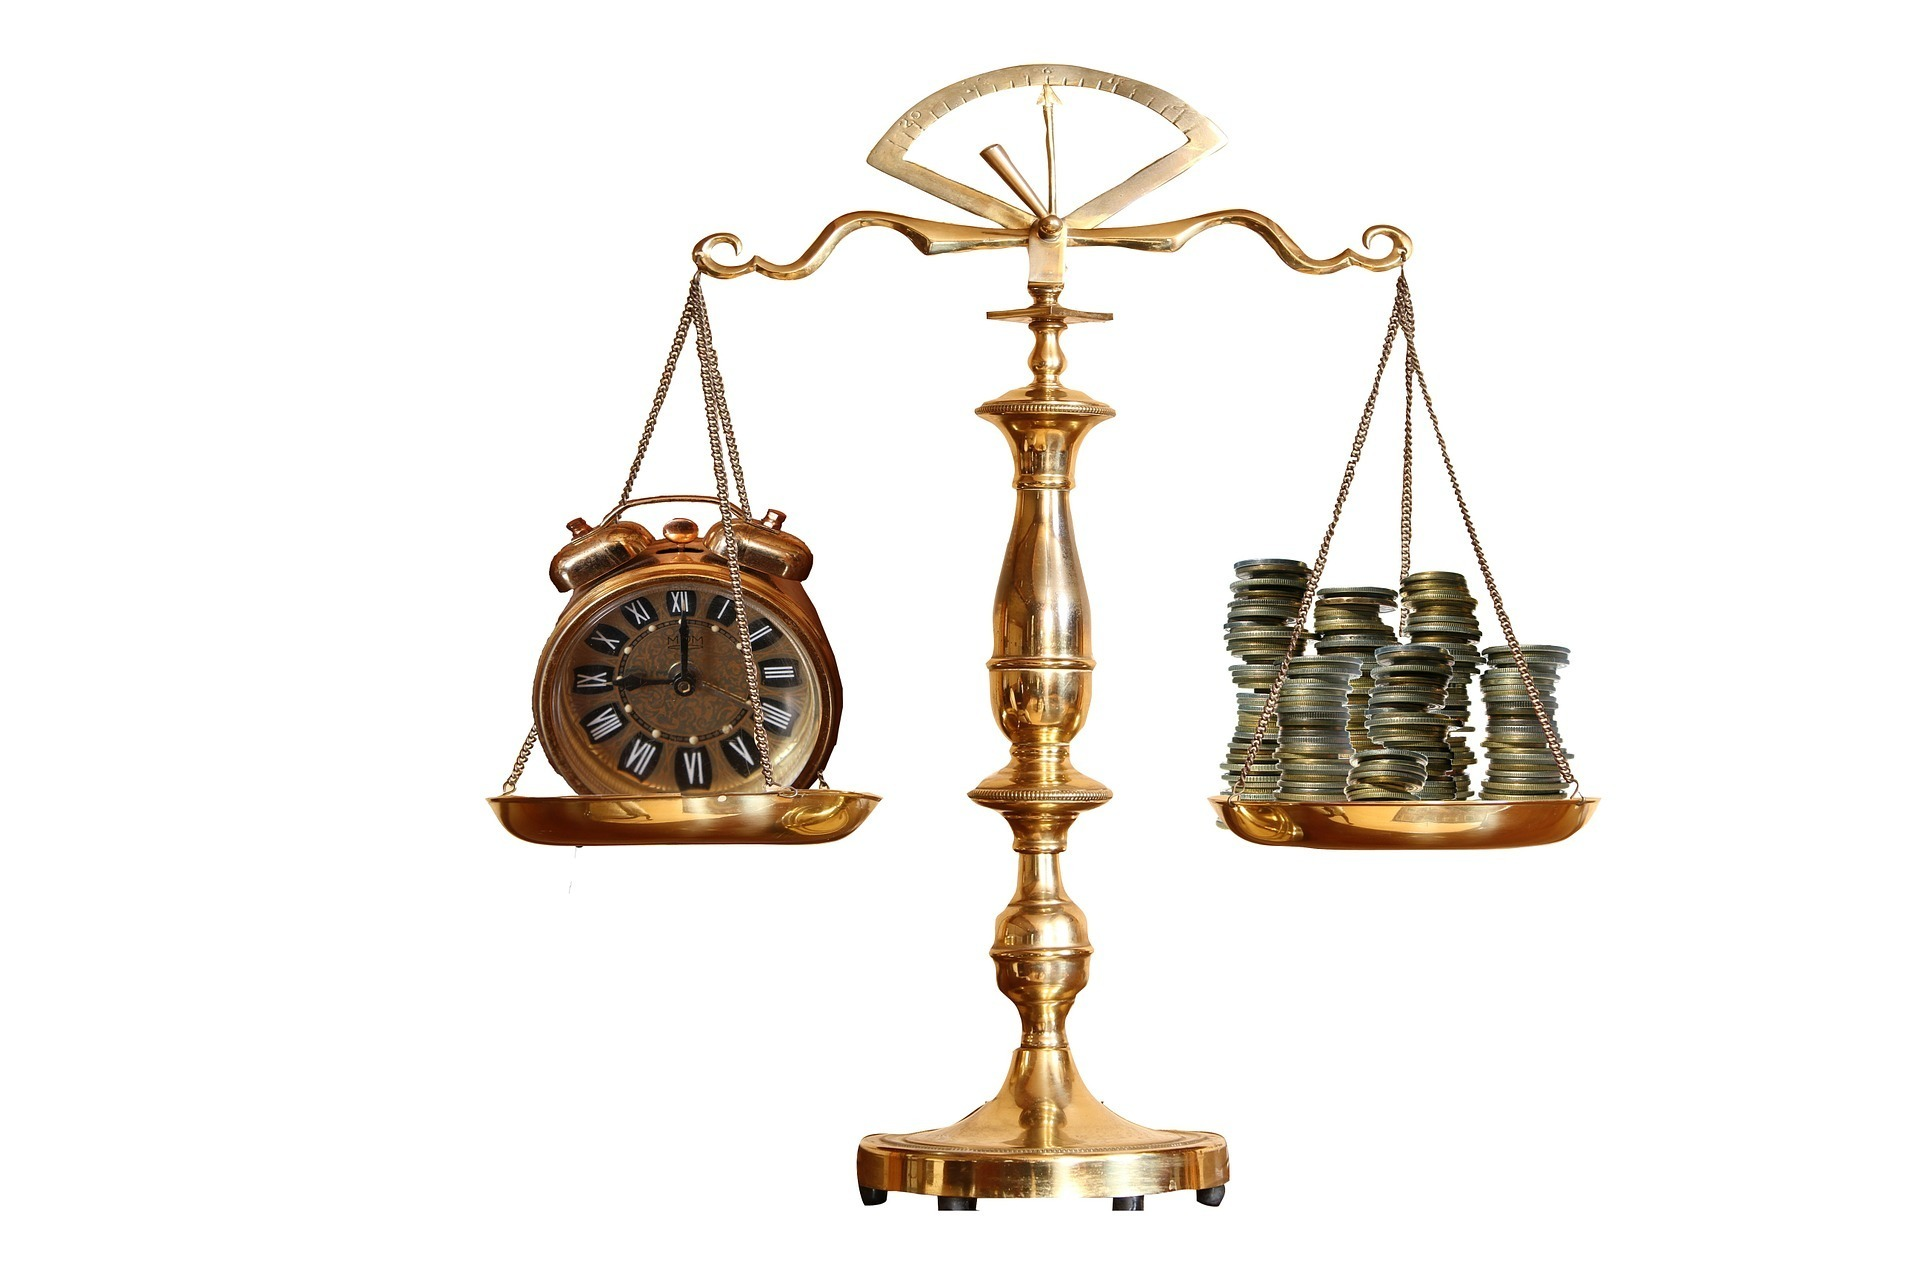 gold scales showing time and money